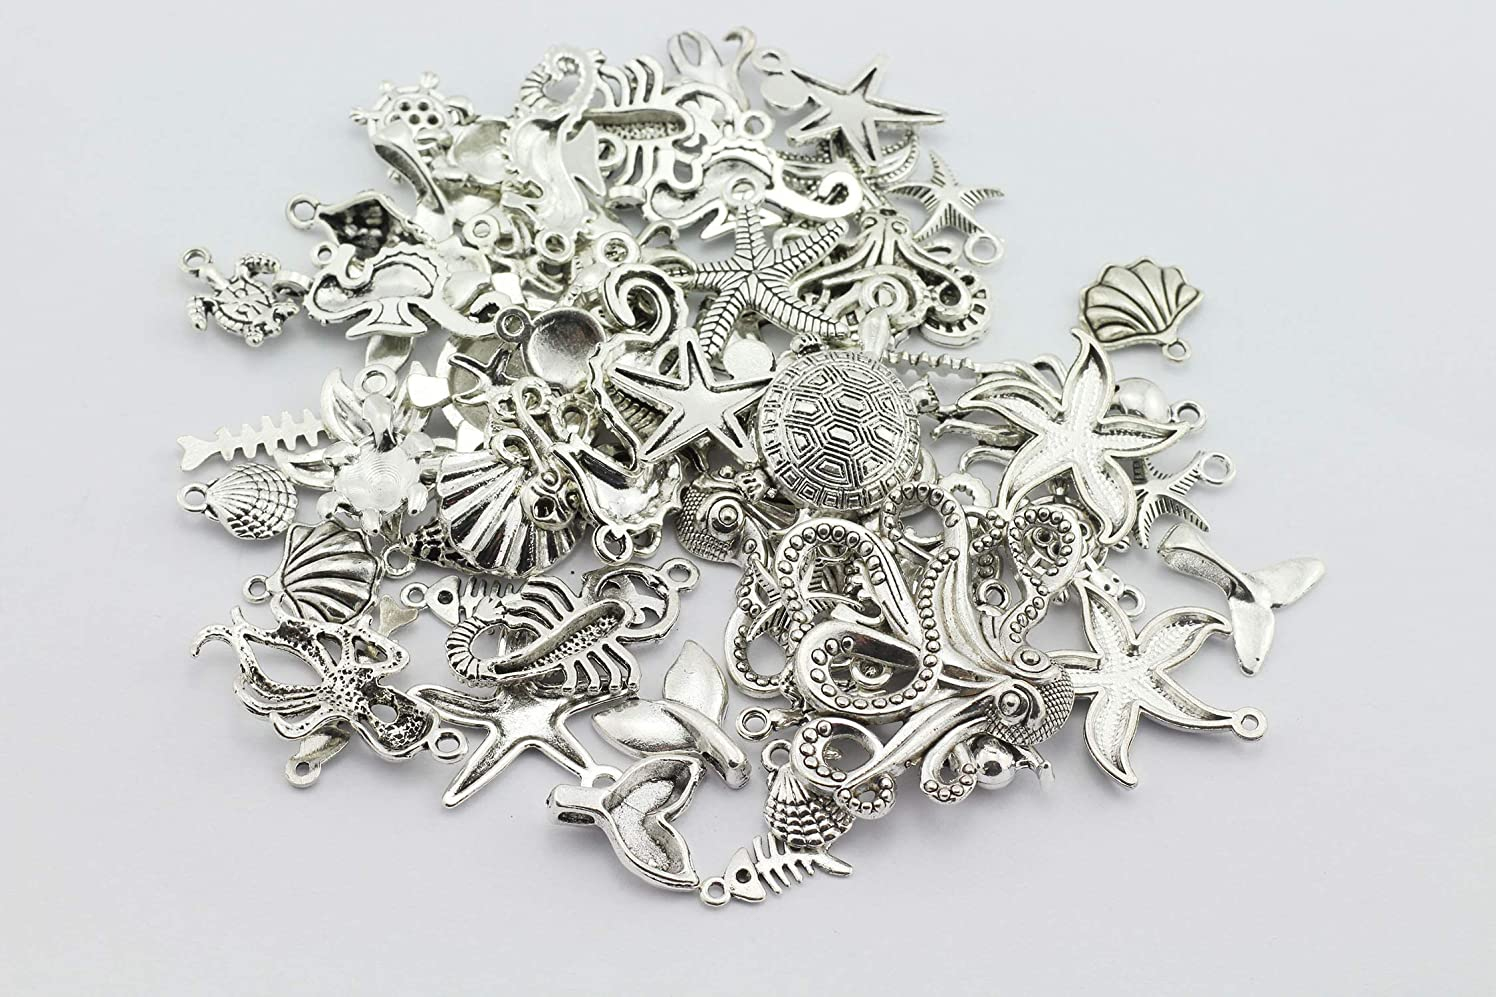 RuiLing 56pcs Antique Silver Charm Pendants DIY Jewelry Making Accessories Creative Marine Life Style Starfish Seahorse Shell Octopus Tortoise Pendants